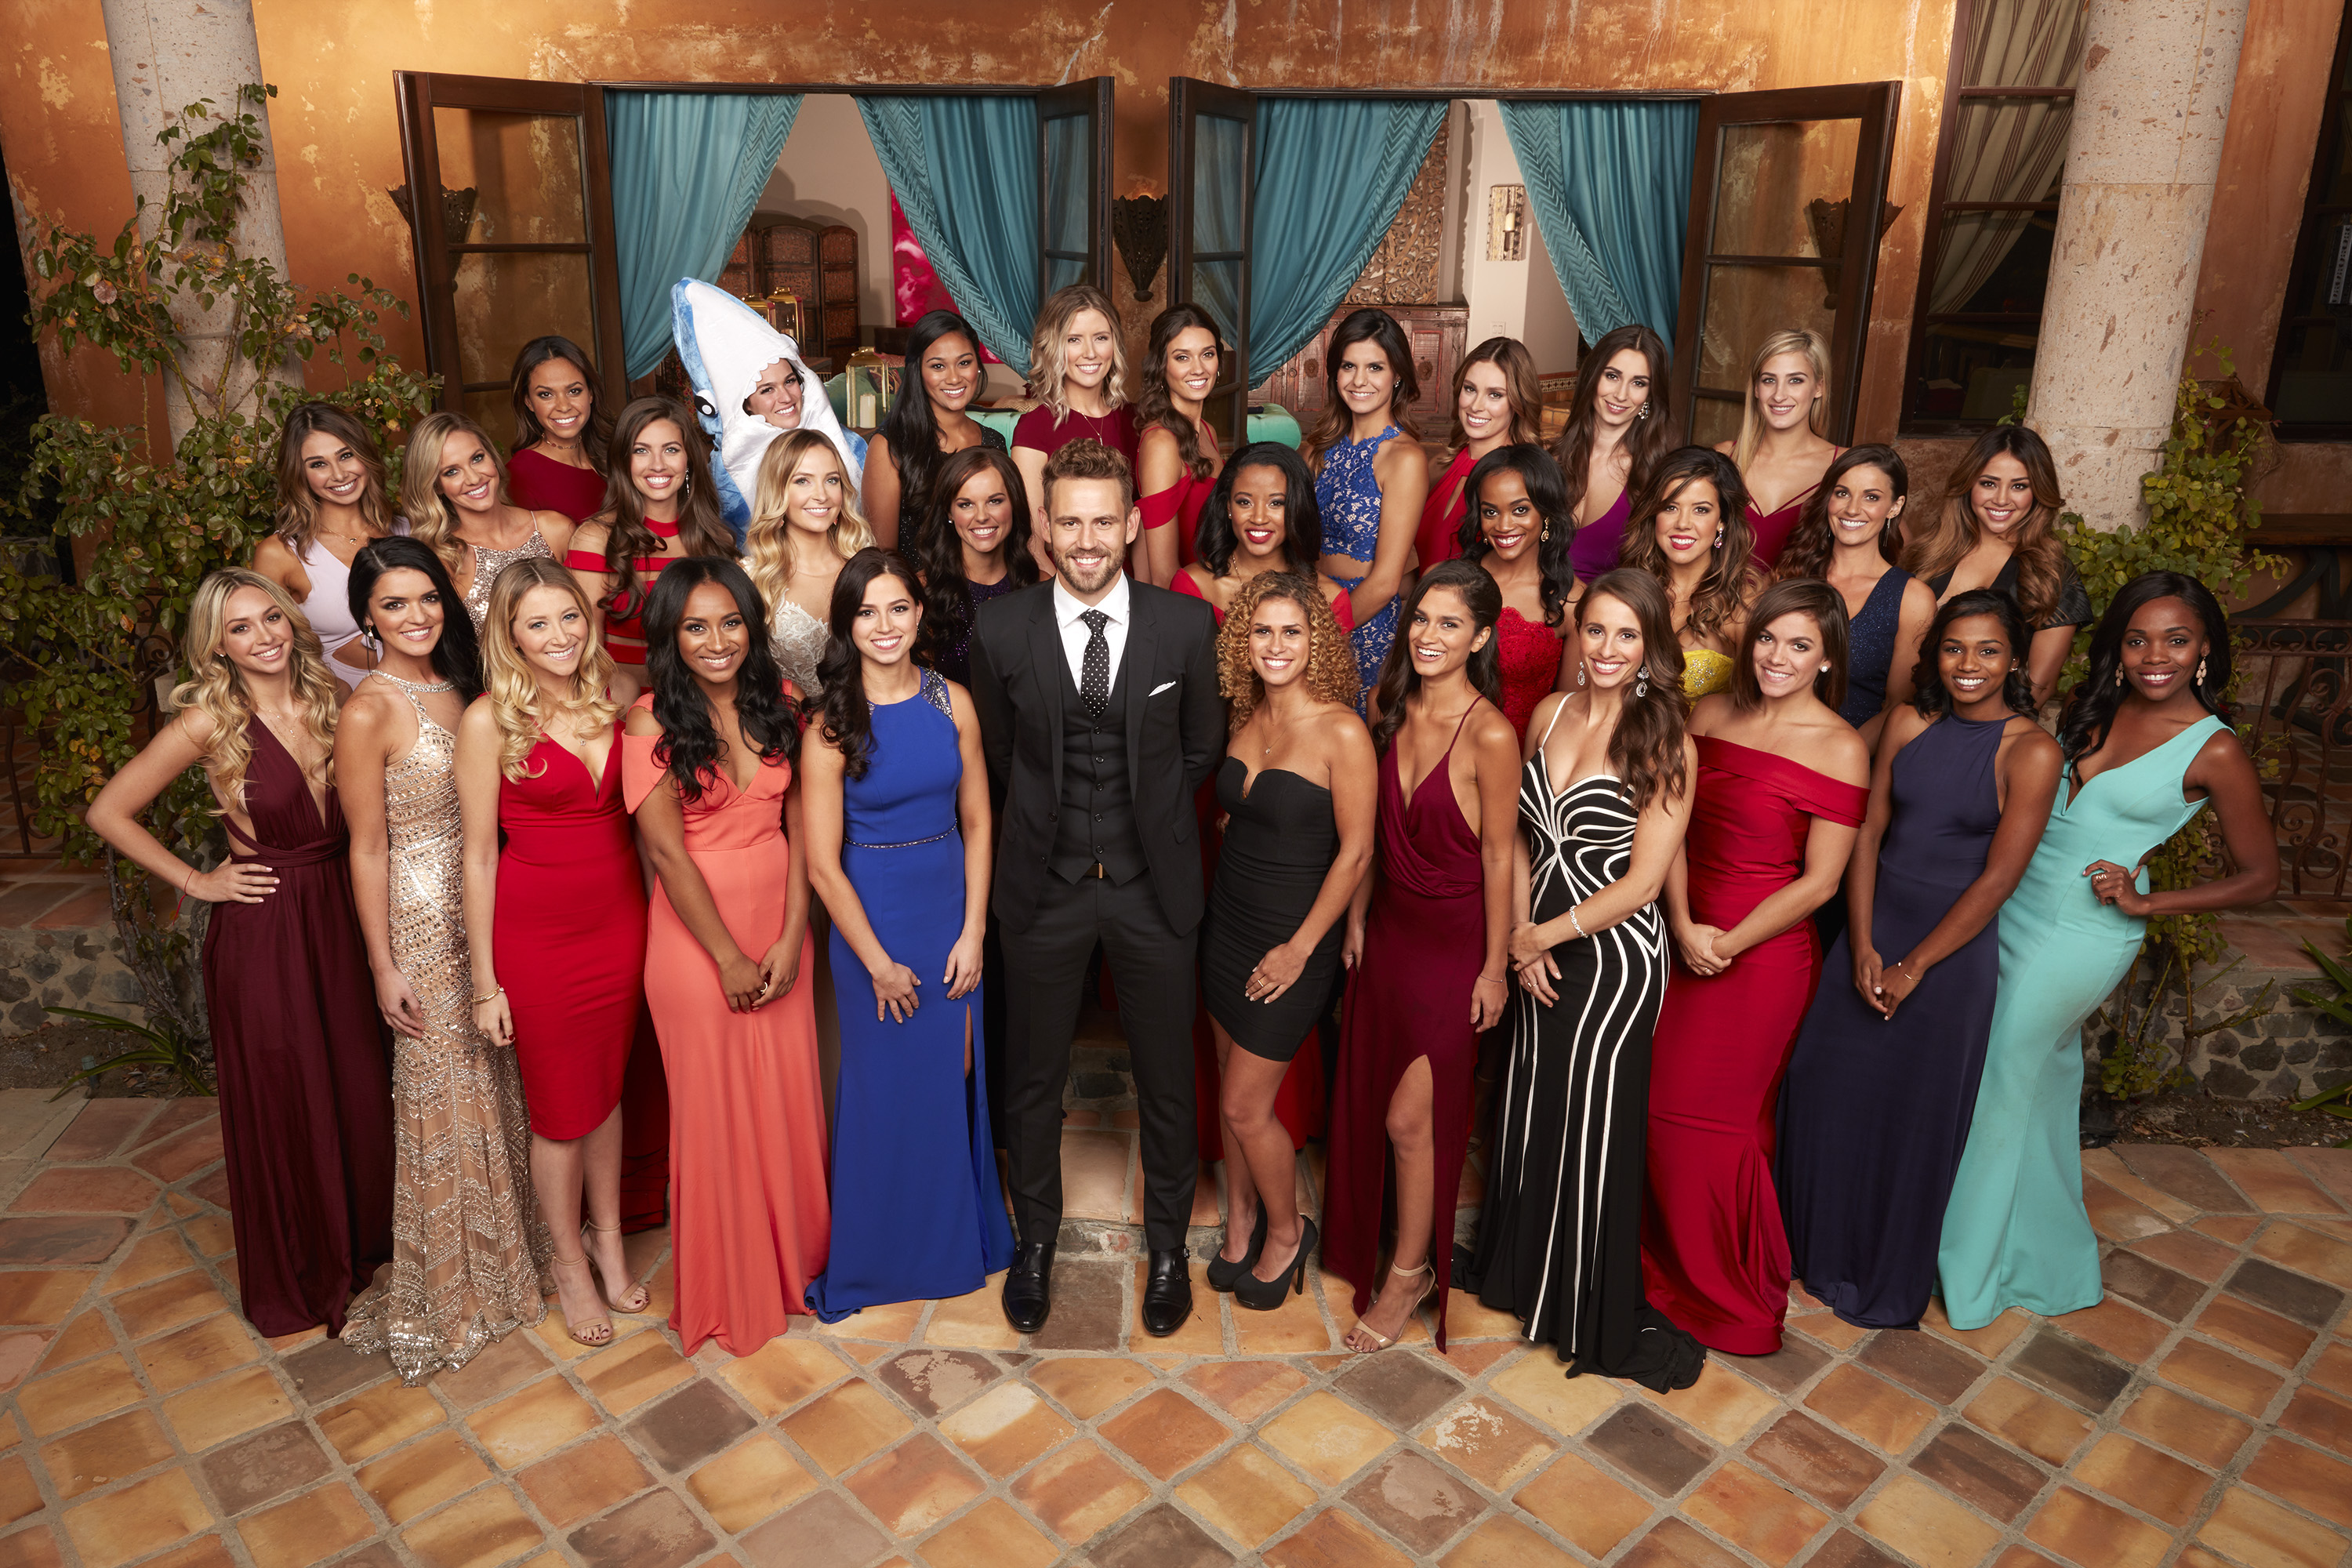 ABC's 'The Bachelor' - Season 21